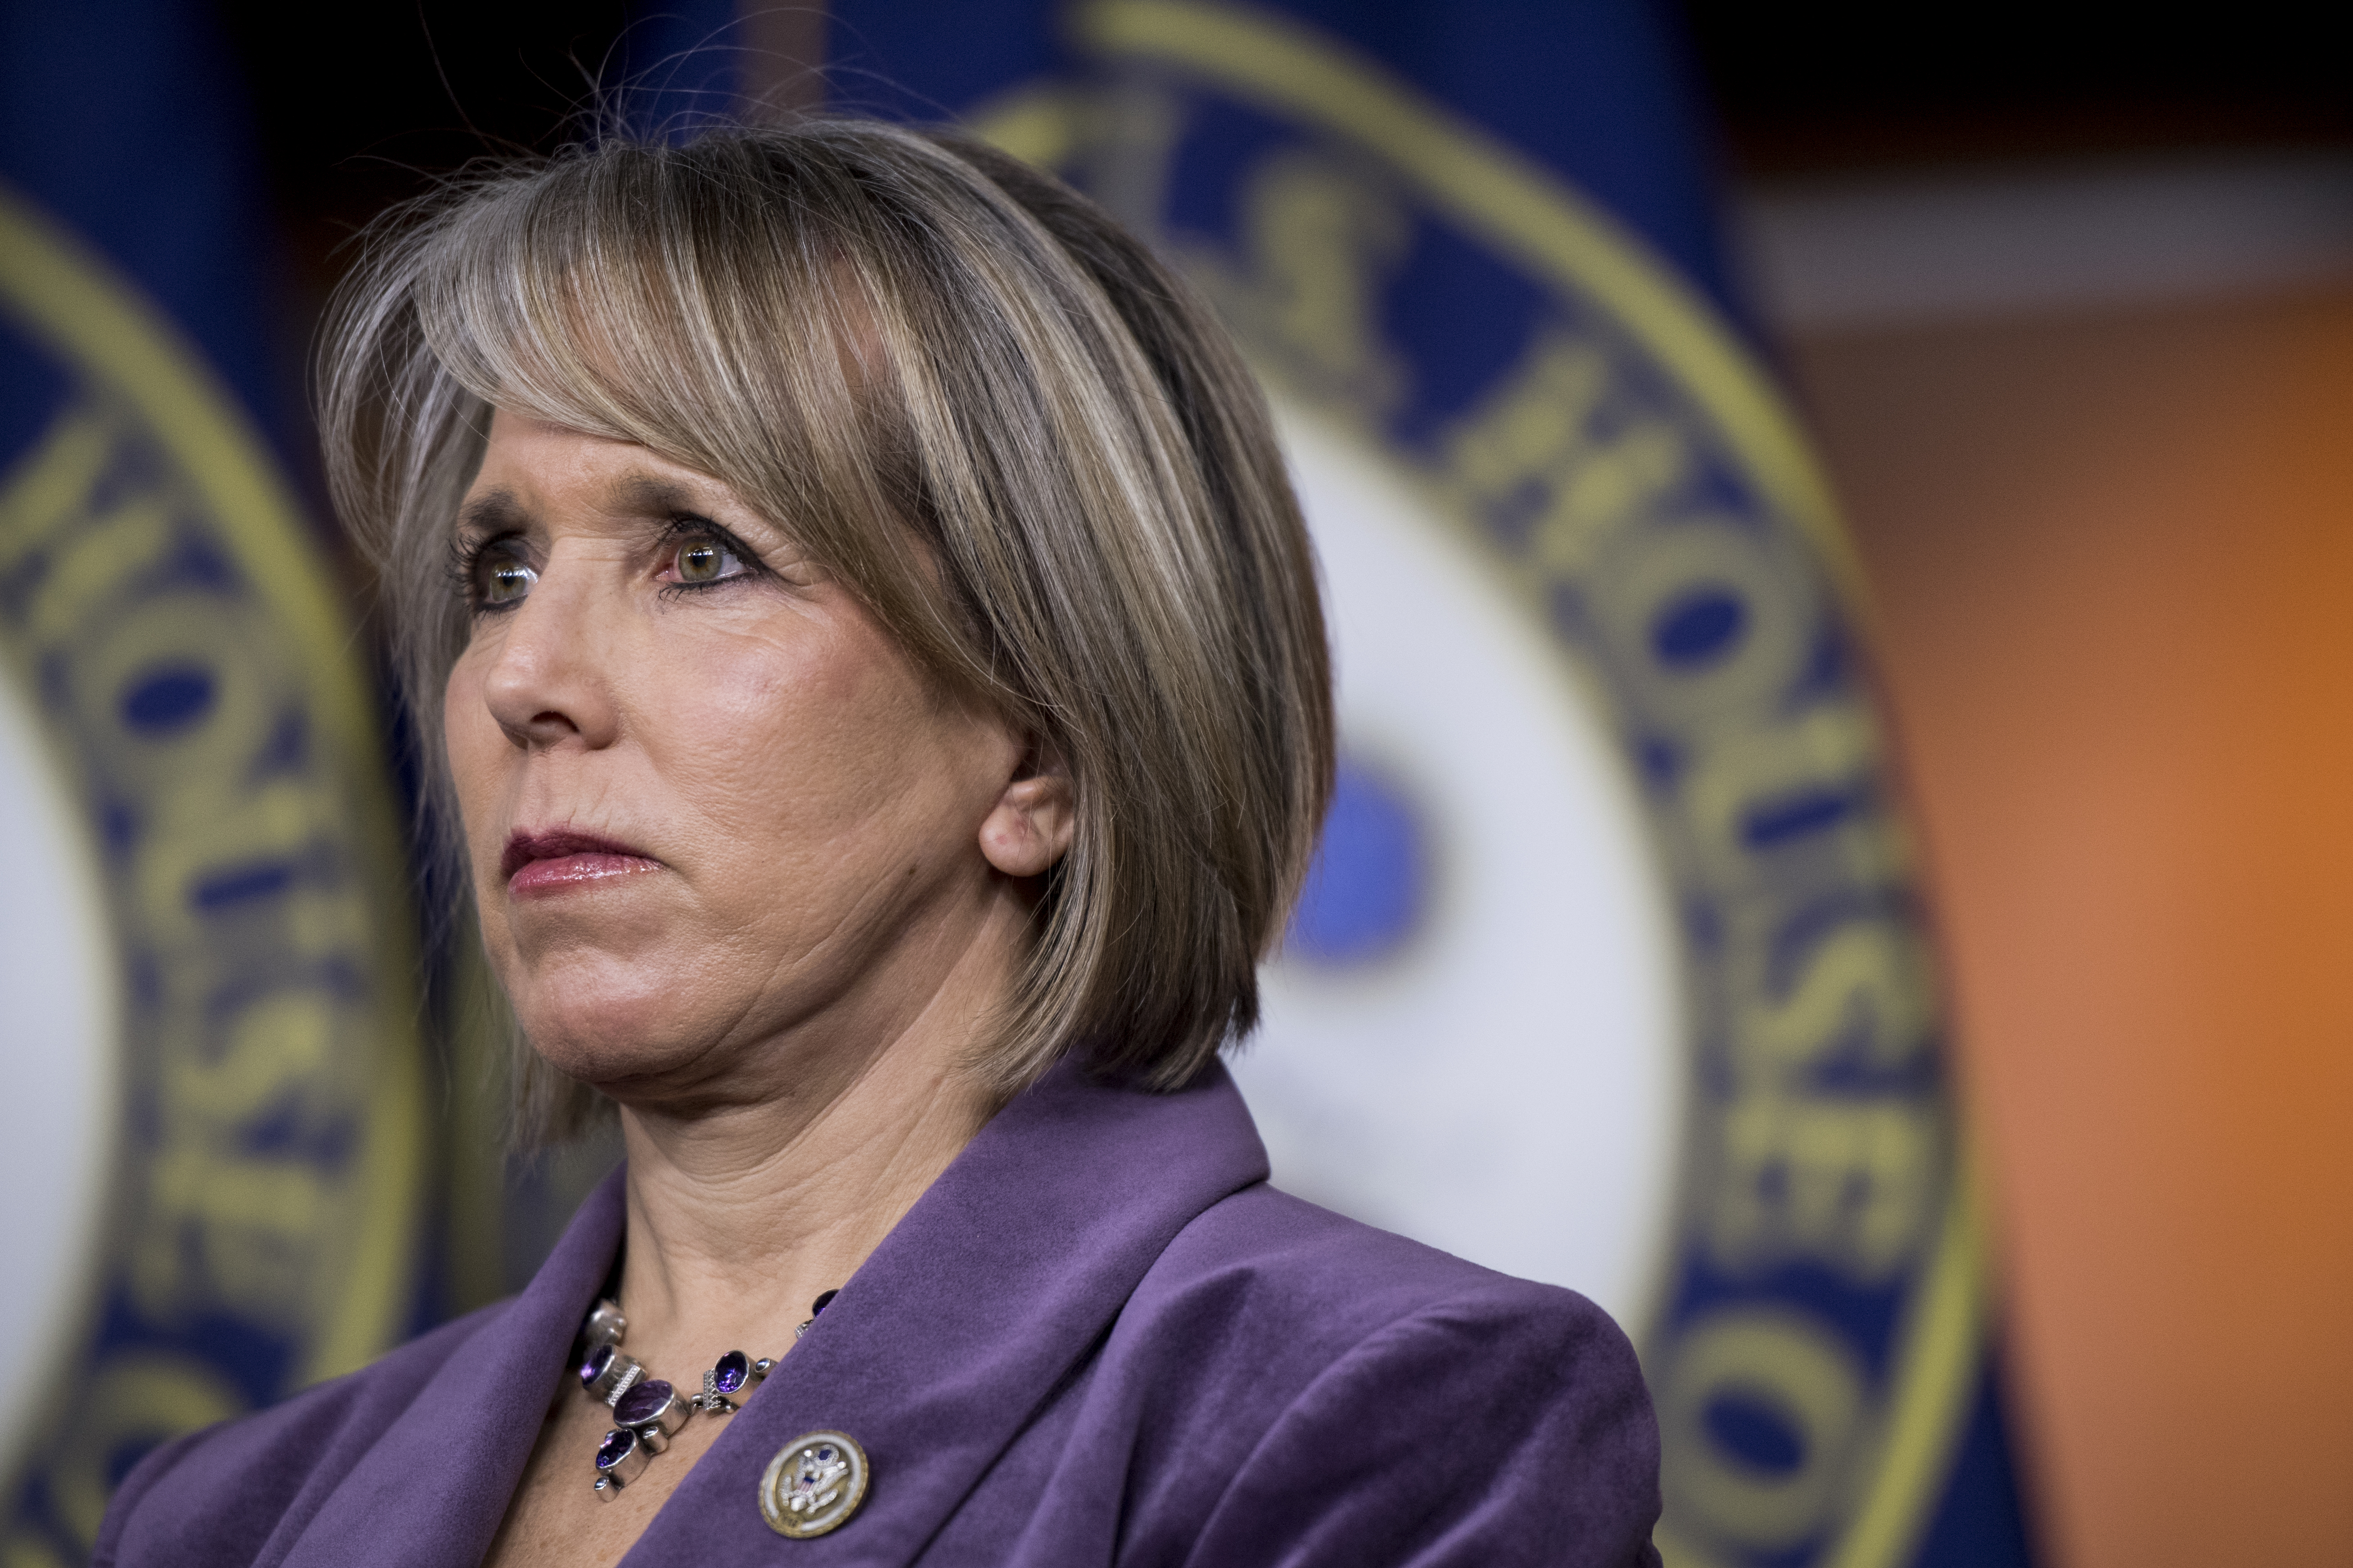 Rep. Michelle Lujan Grisham, D-N.M., at a news conference in the Capitol on Wednesday, Feb. 15, 2017. (Photo By Bill Clark/CQ Roll Call)